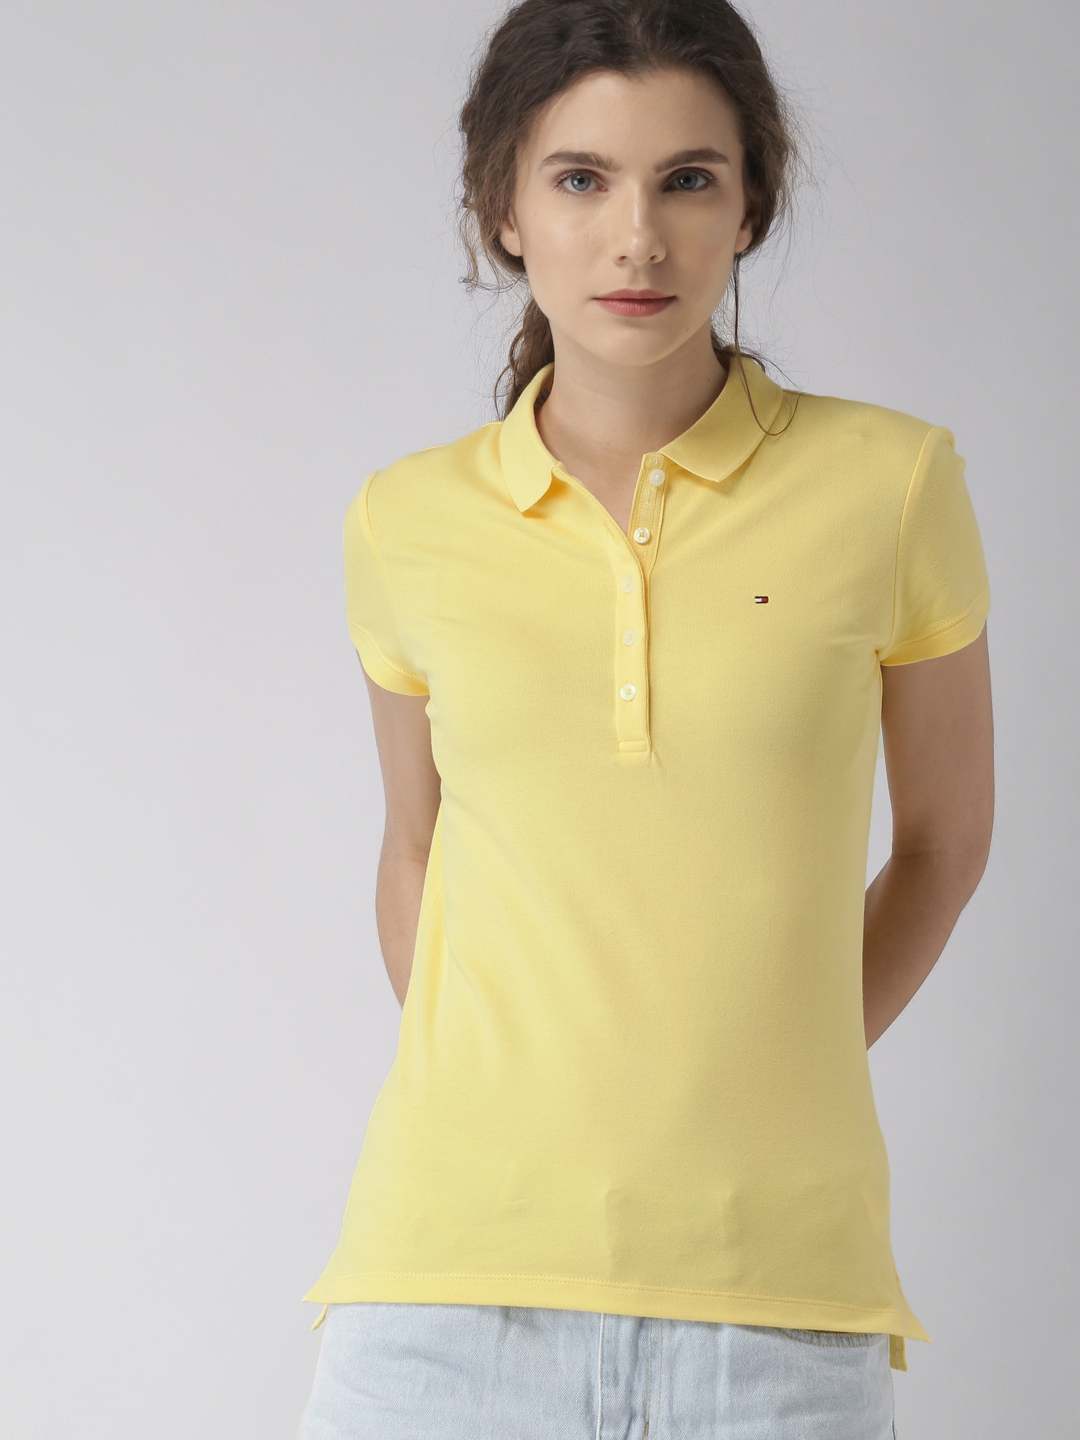 9e50054b7bb3c5 Buy Tommy Hilfiger Women Yellow Solid Polo Collar T Shirt - Tshirts ...